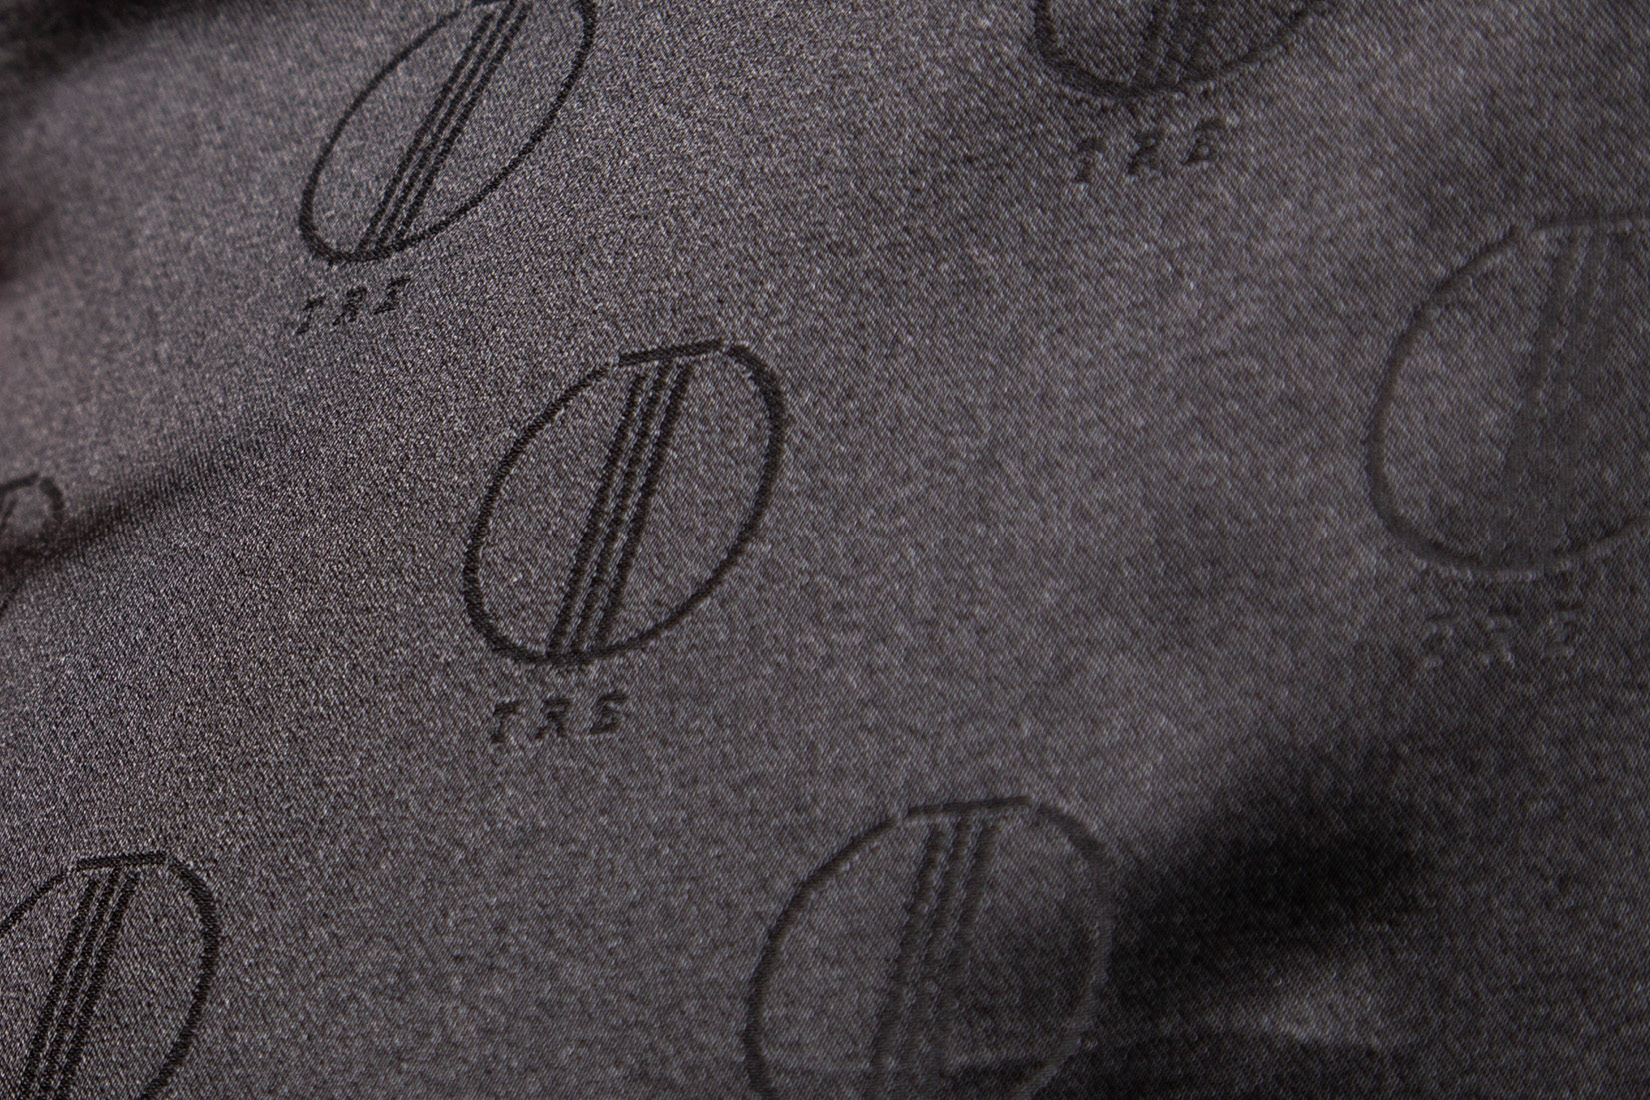 TRE brand logo printed on clothes from the fashion brand.